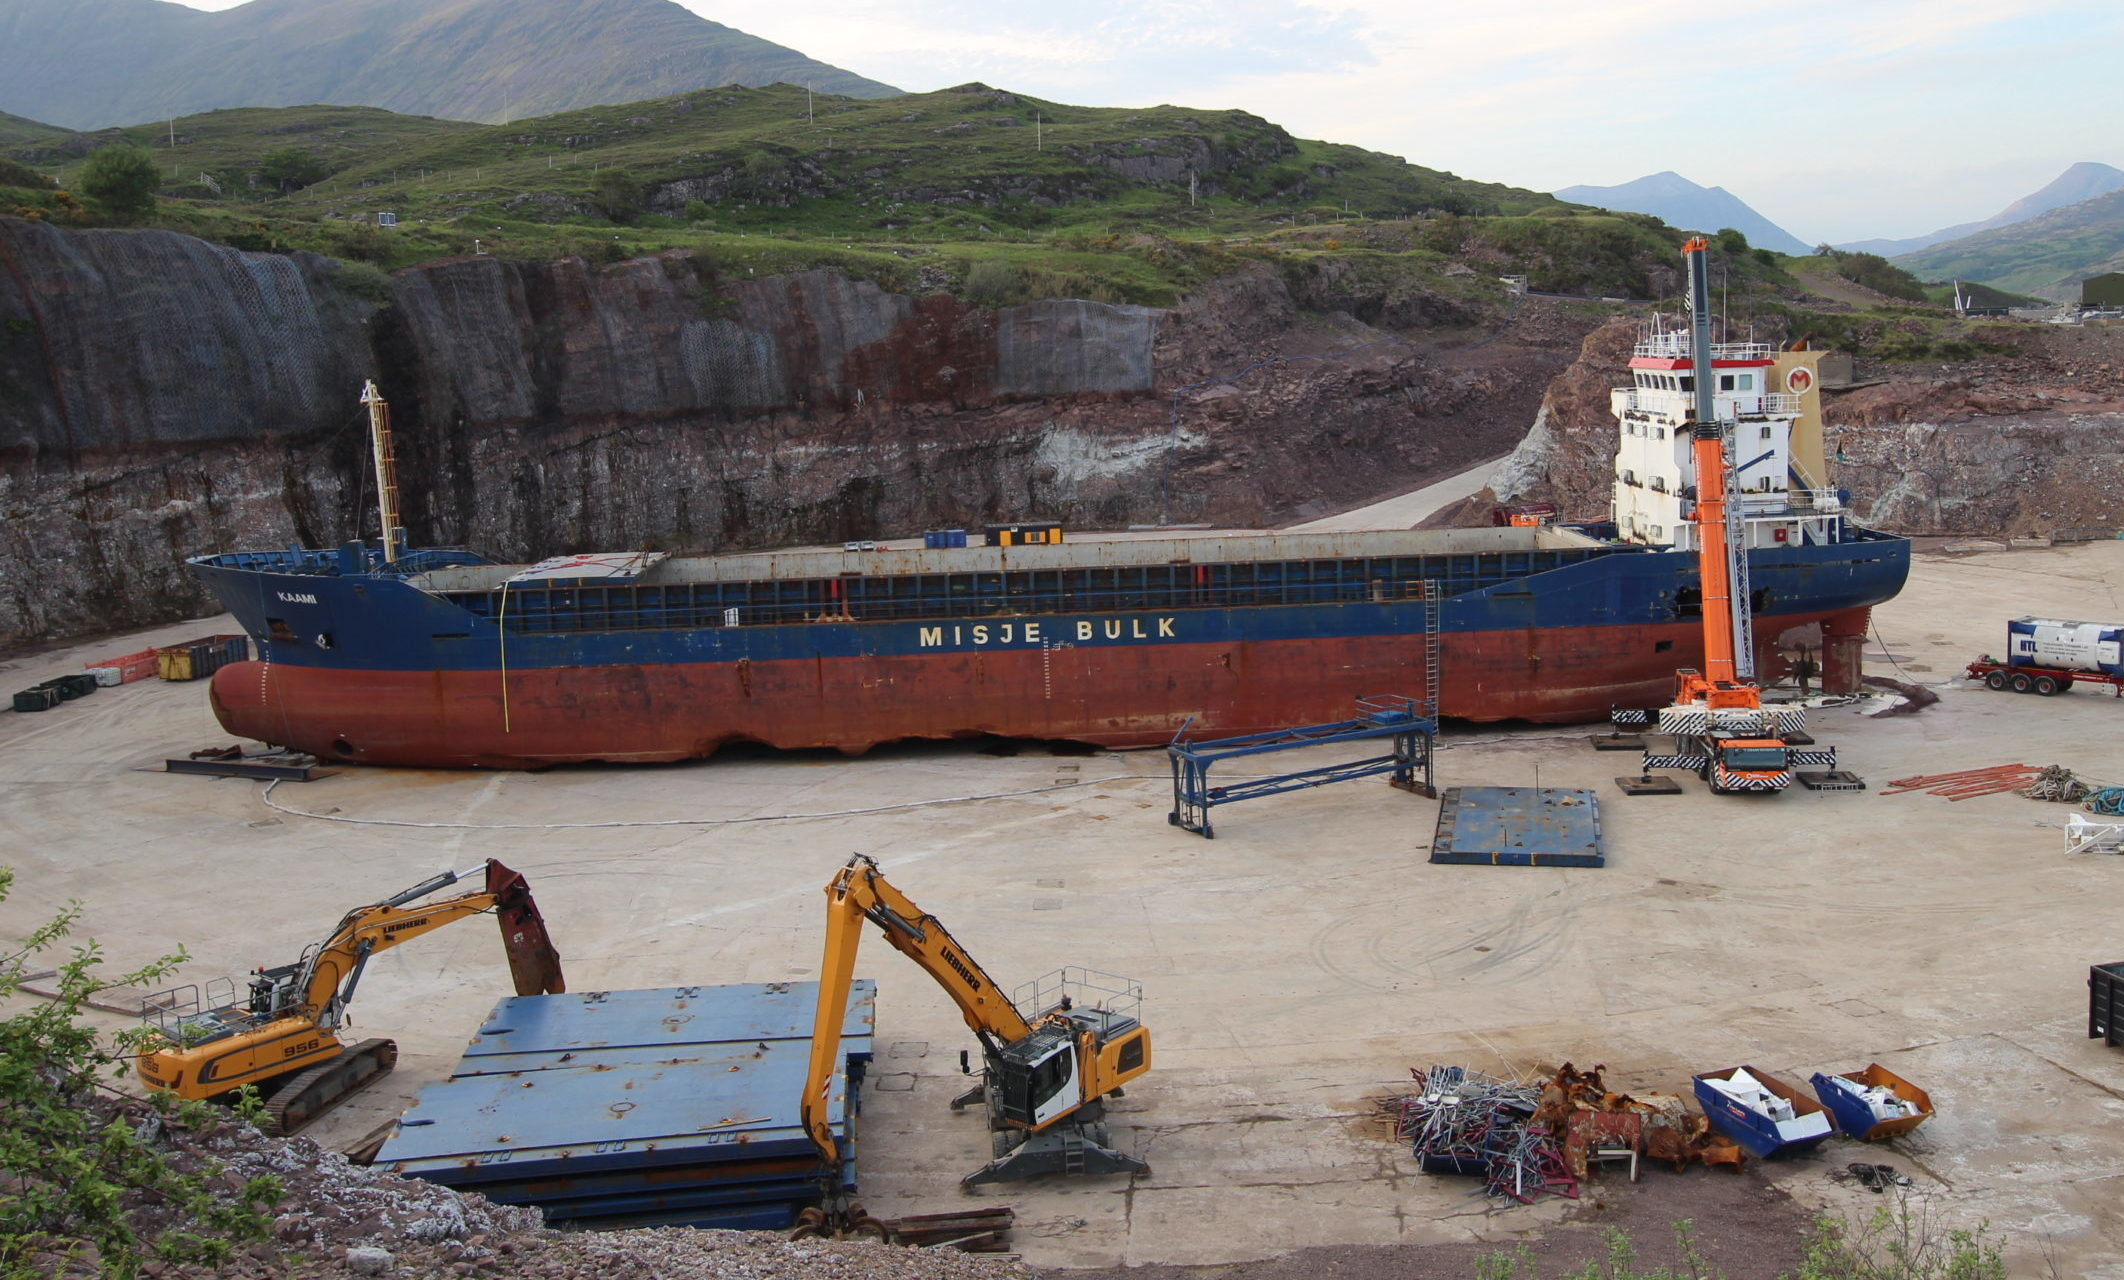 The decommissioned MV Kaami at Loch Kishorn dry dock.